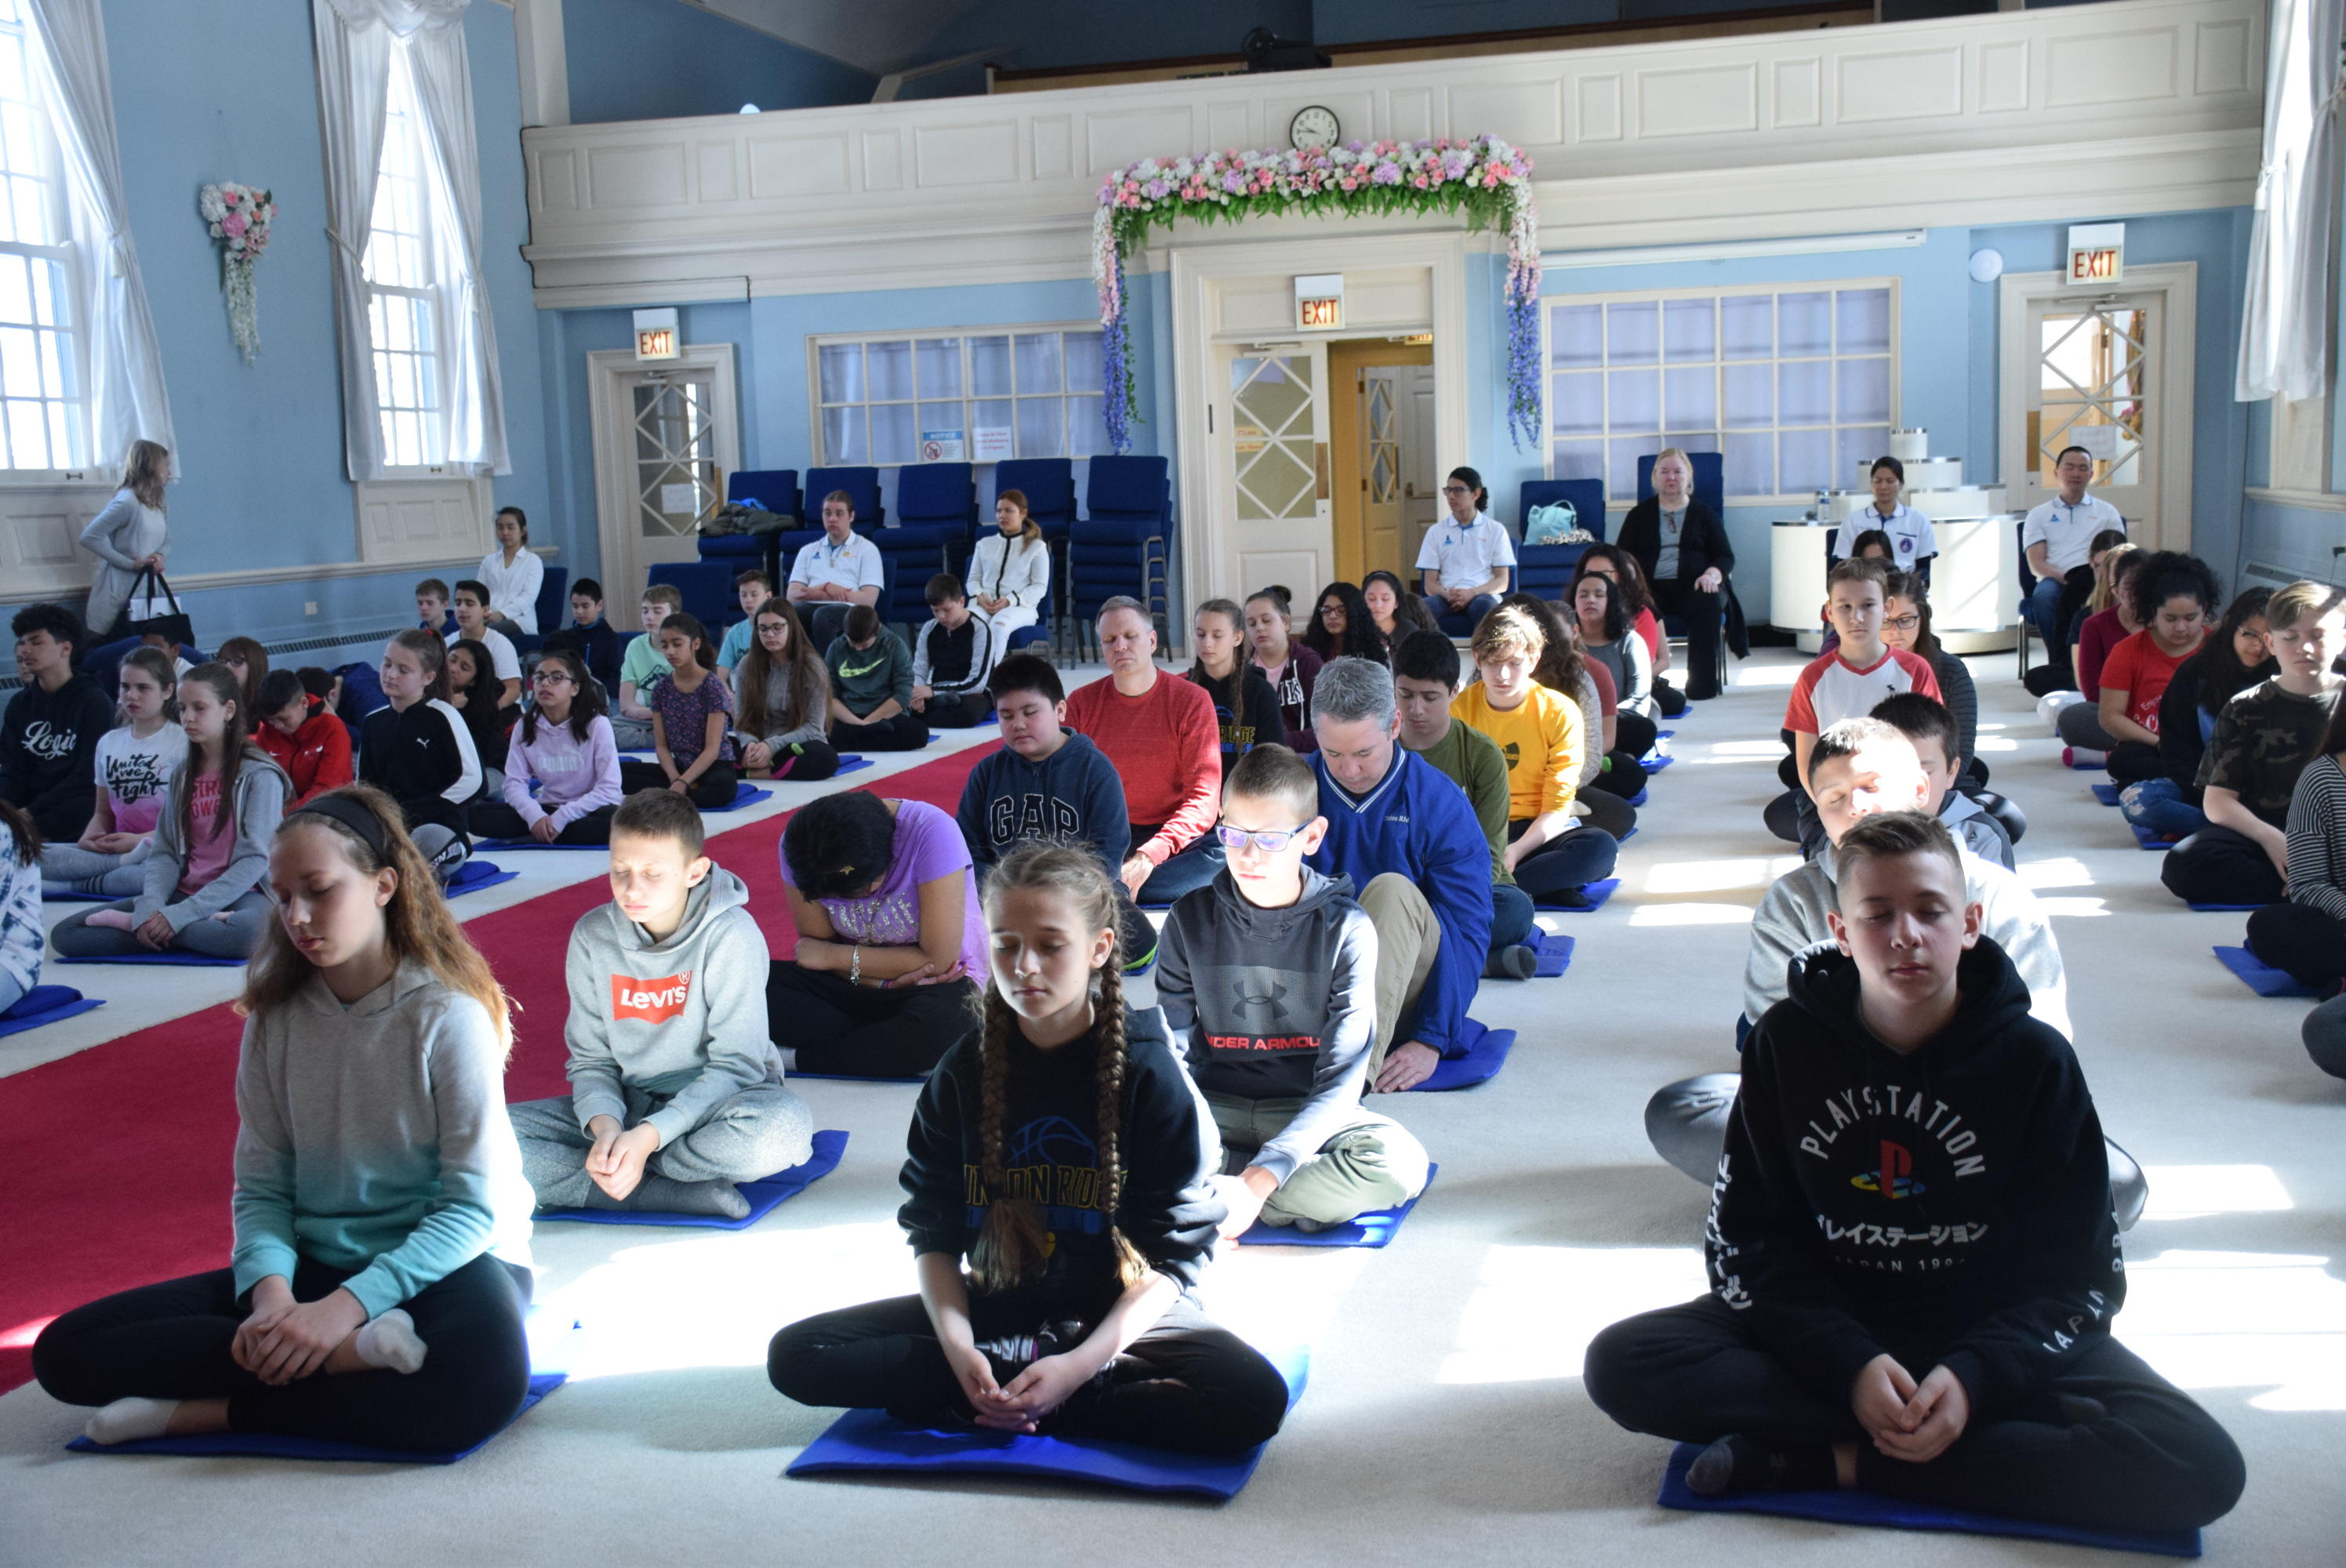 students and teachers in meditation